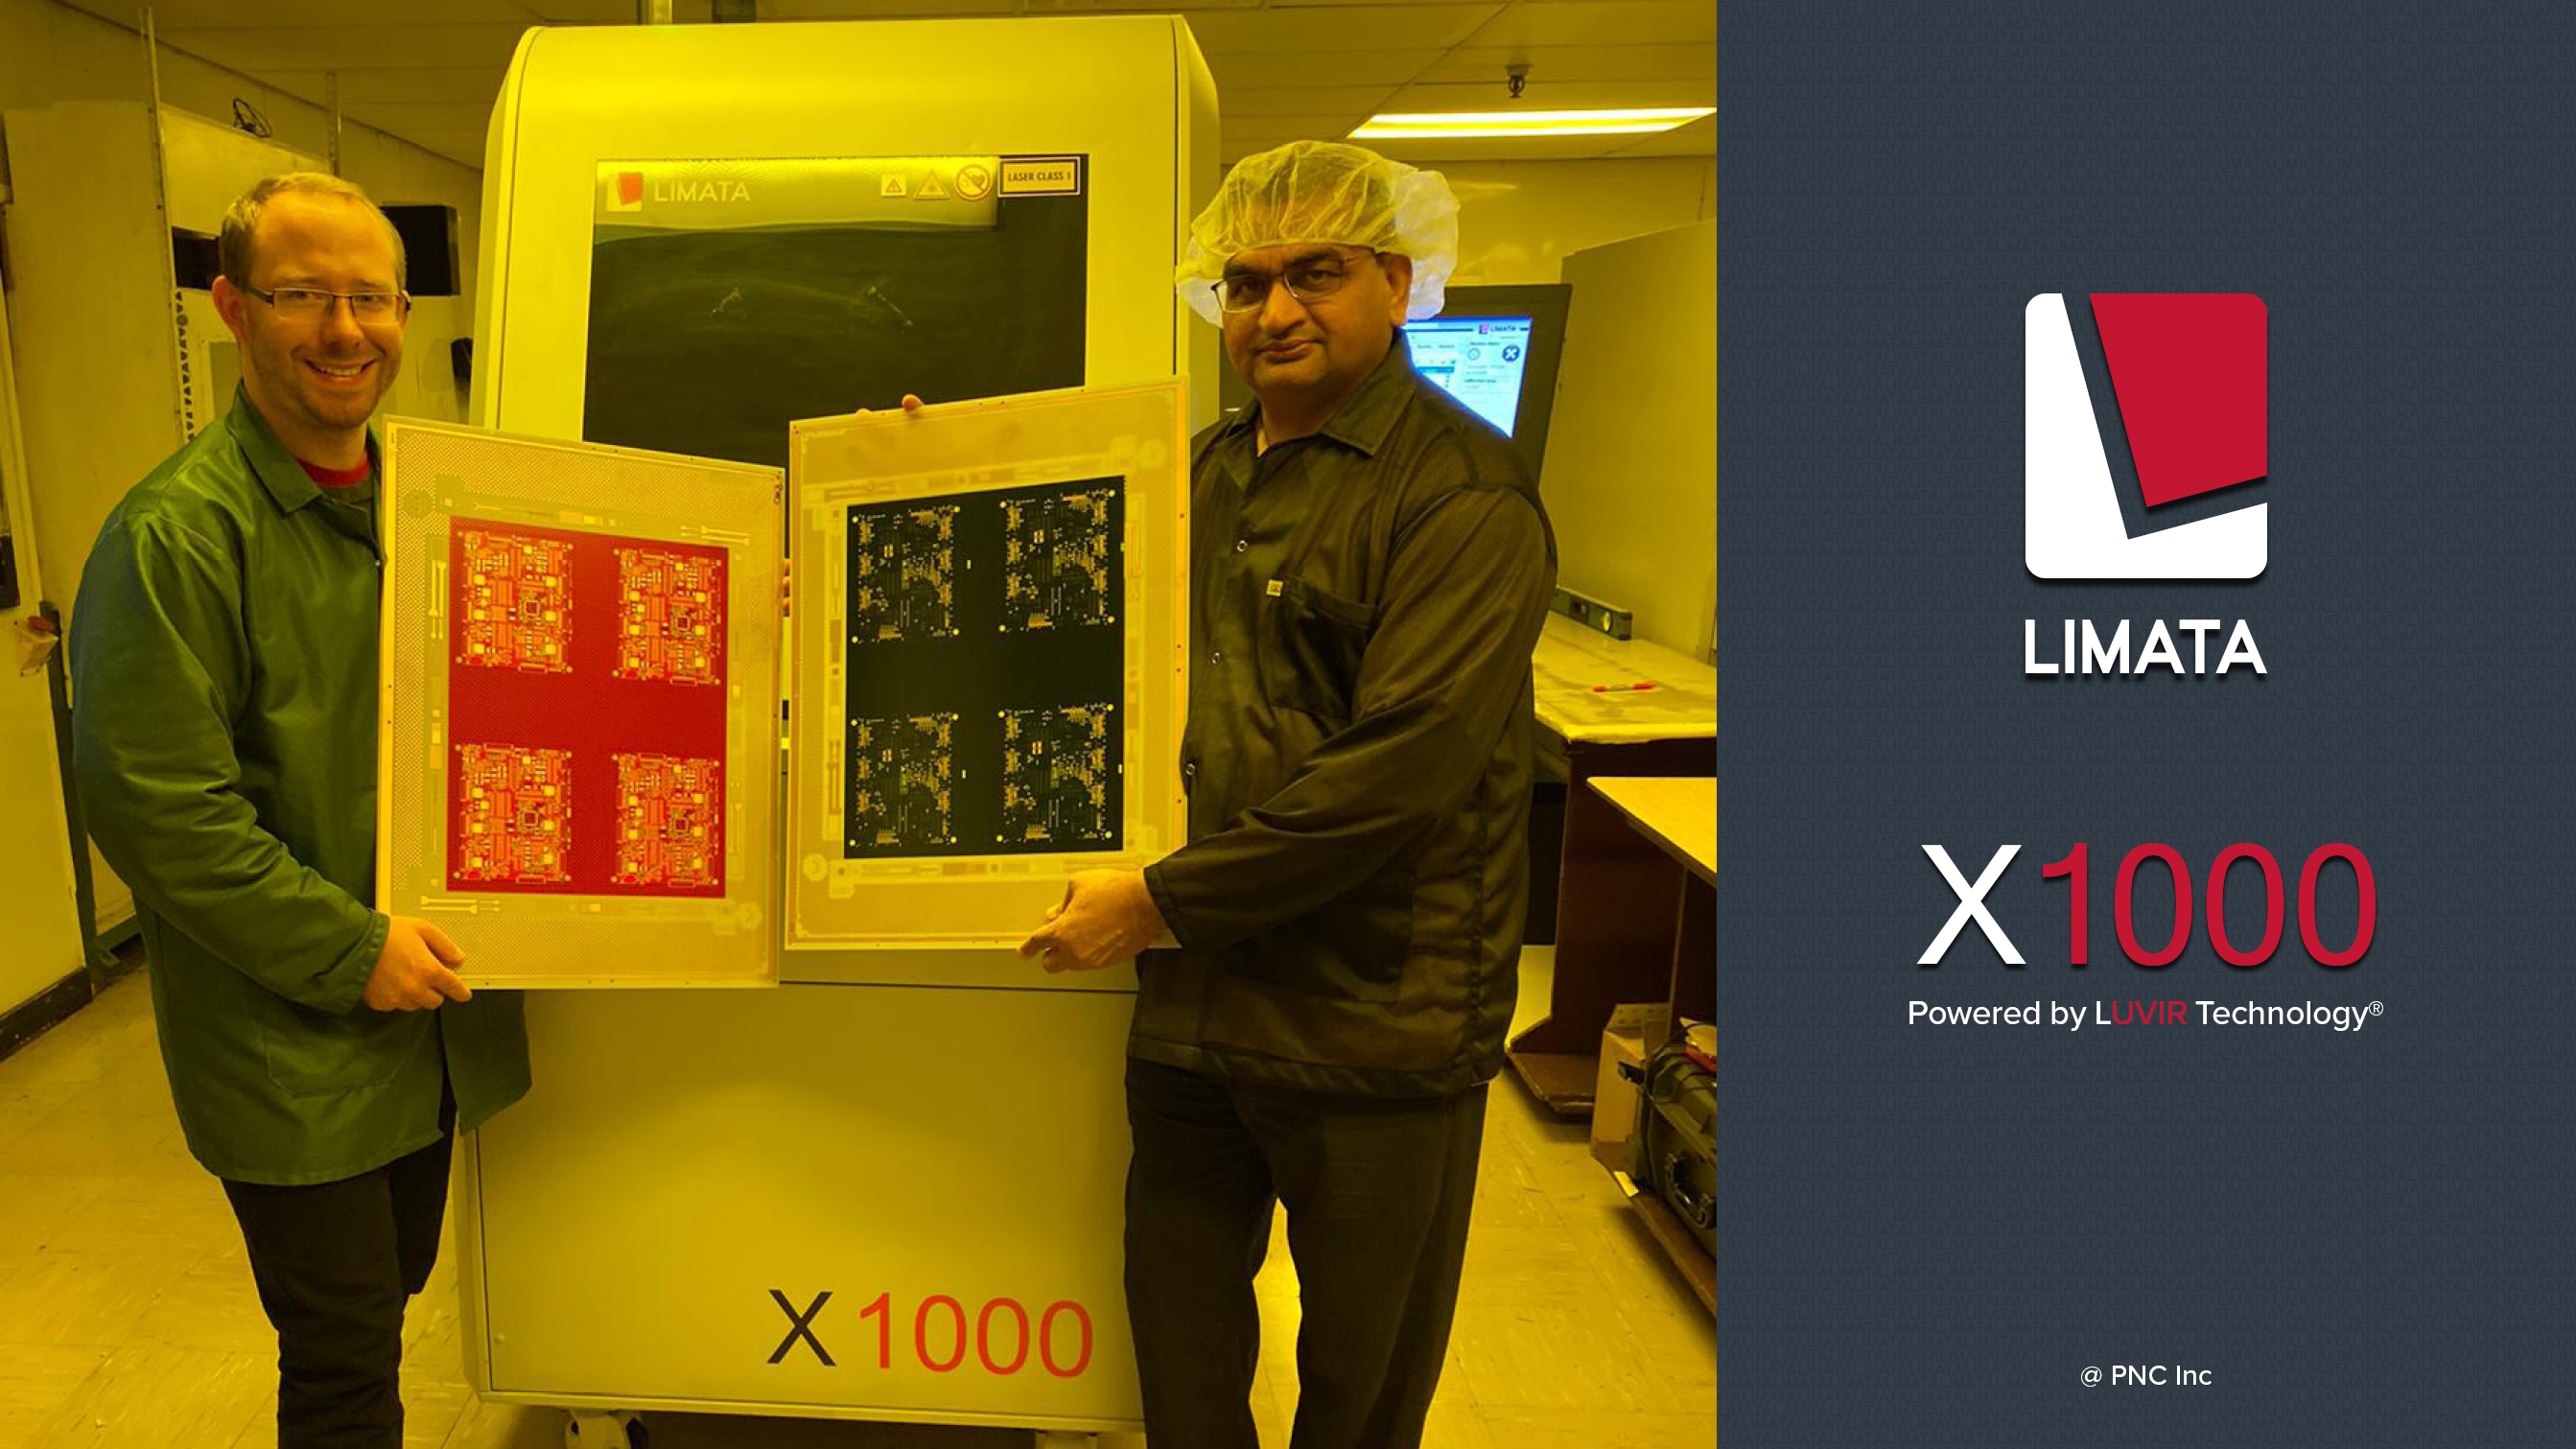 LIMATA X1000 Powered by LUVIr Technology at PNC Inc